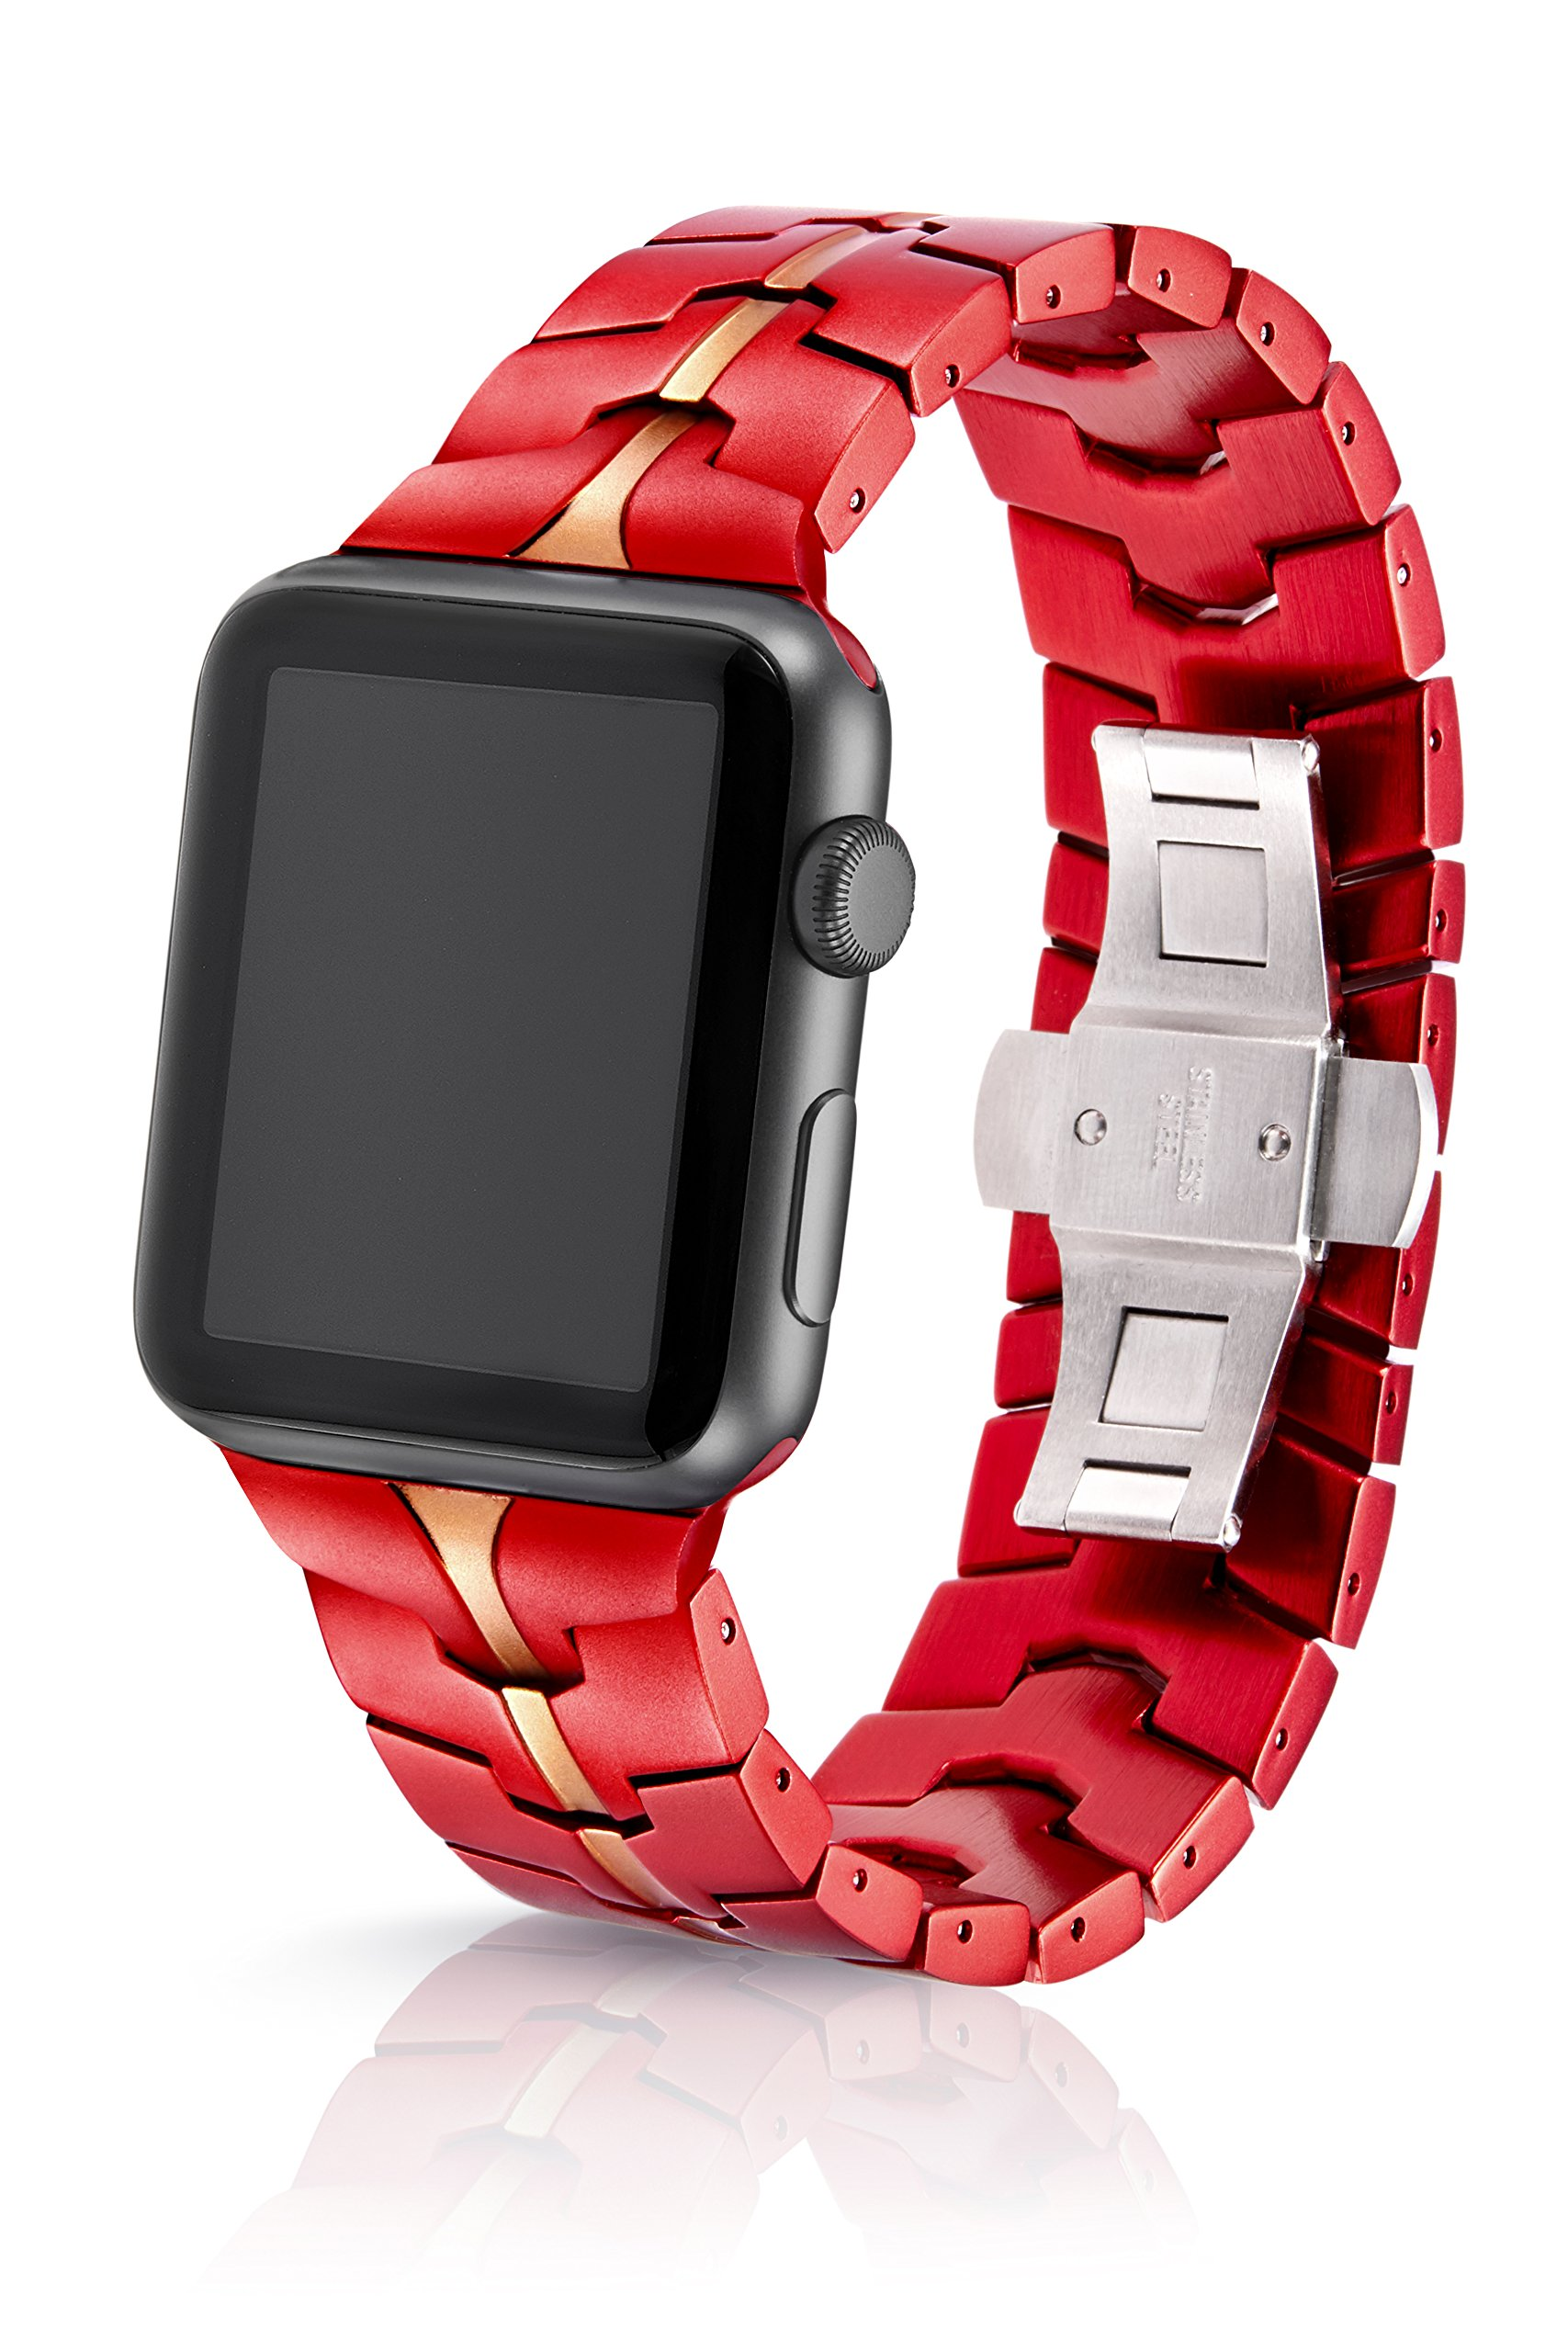 42/44mm JUUK Crimson Vitero Premium Watch Band Made for The Apple Watch, Using Aircraft Grade, Hard Anodized 6000 Series Aluminum with a Solid Stainless Steel Butterfly deployant Buckle (Matte)